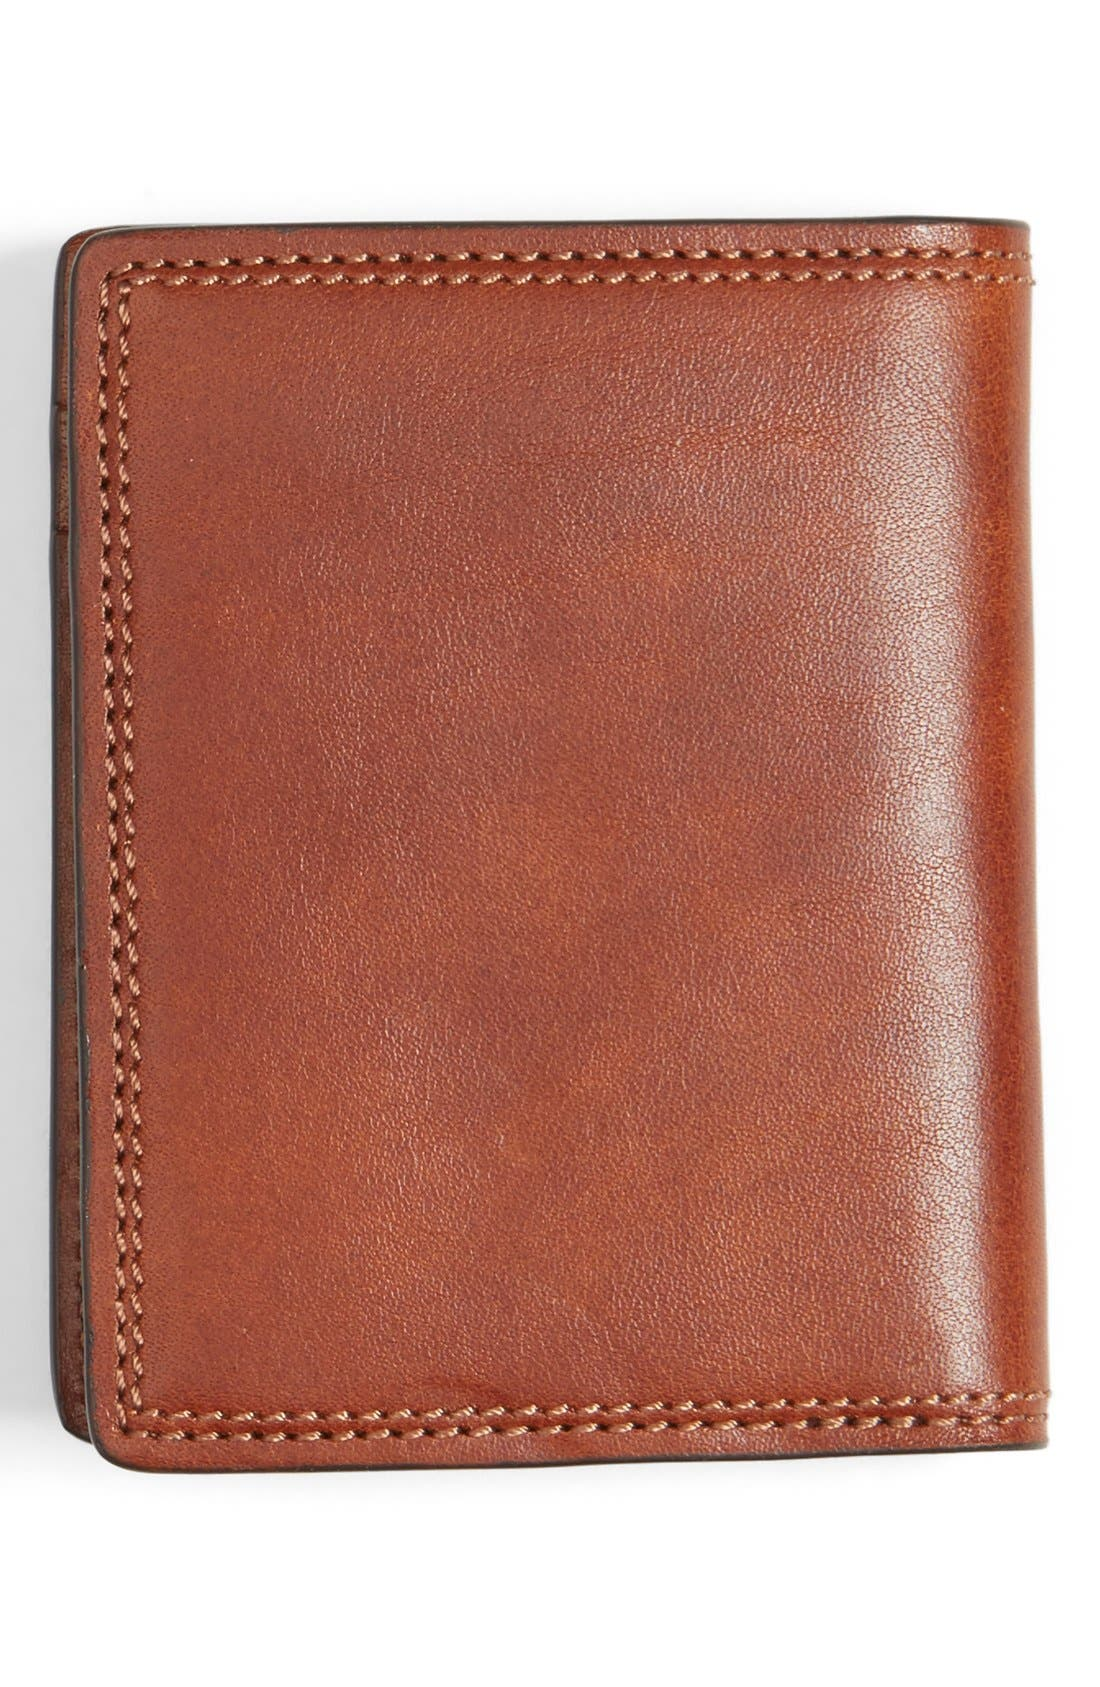 Leather Front Pocket Money Clip Wallet,                             Alternate thumbnail 2, color,                             233